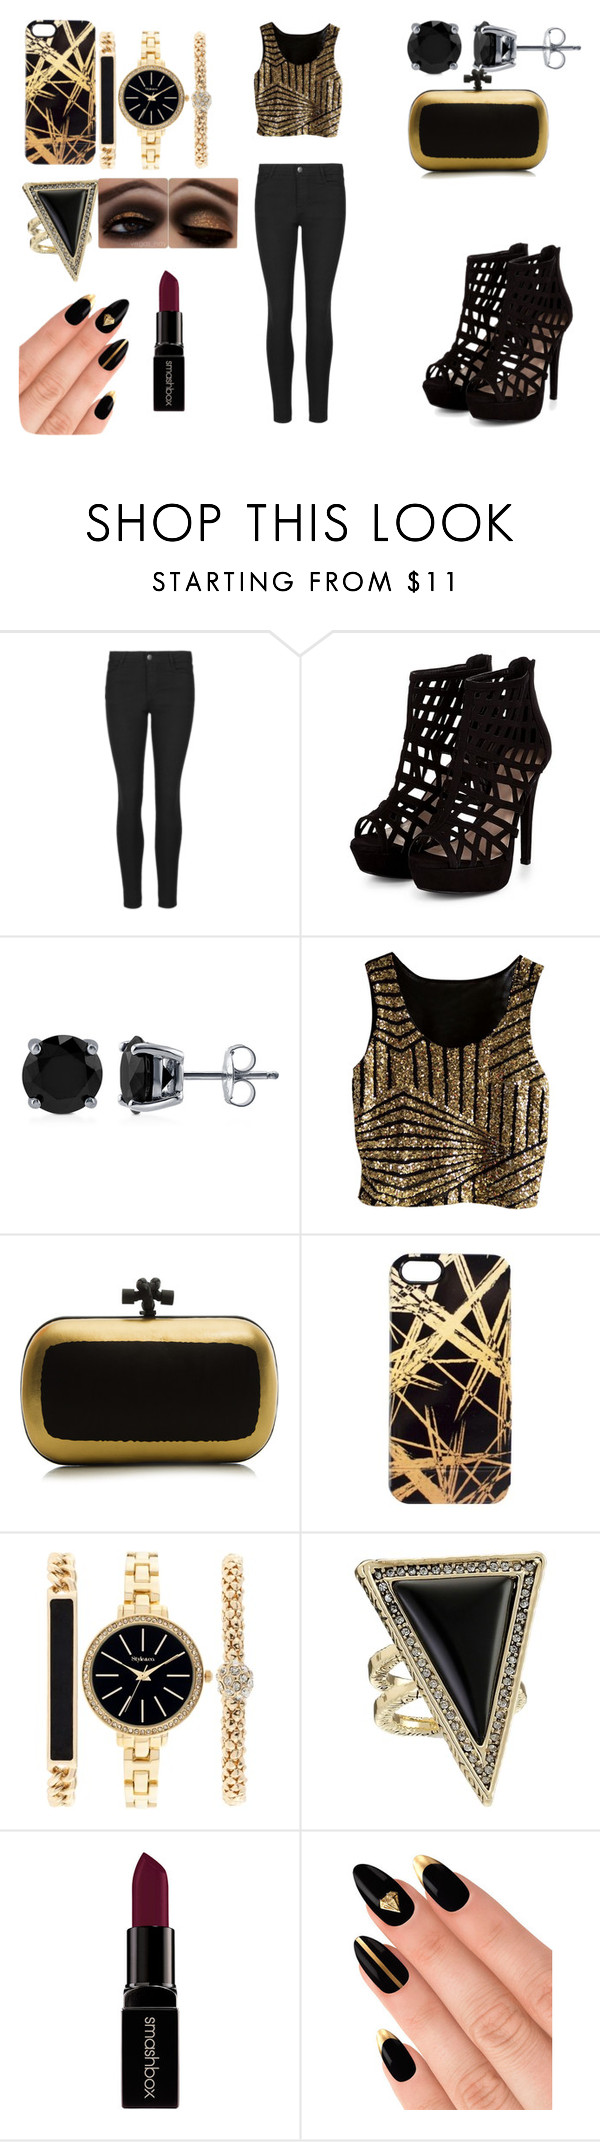 """""""fun"""" by mojomoleen ❤ liked on Polyvore featuring Indigo Collection, BERRICLE, Bottega Veneta, Khristian A. Howell, Style & Co., House of Harlow 1960, Smashbox and House of Holland"""